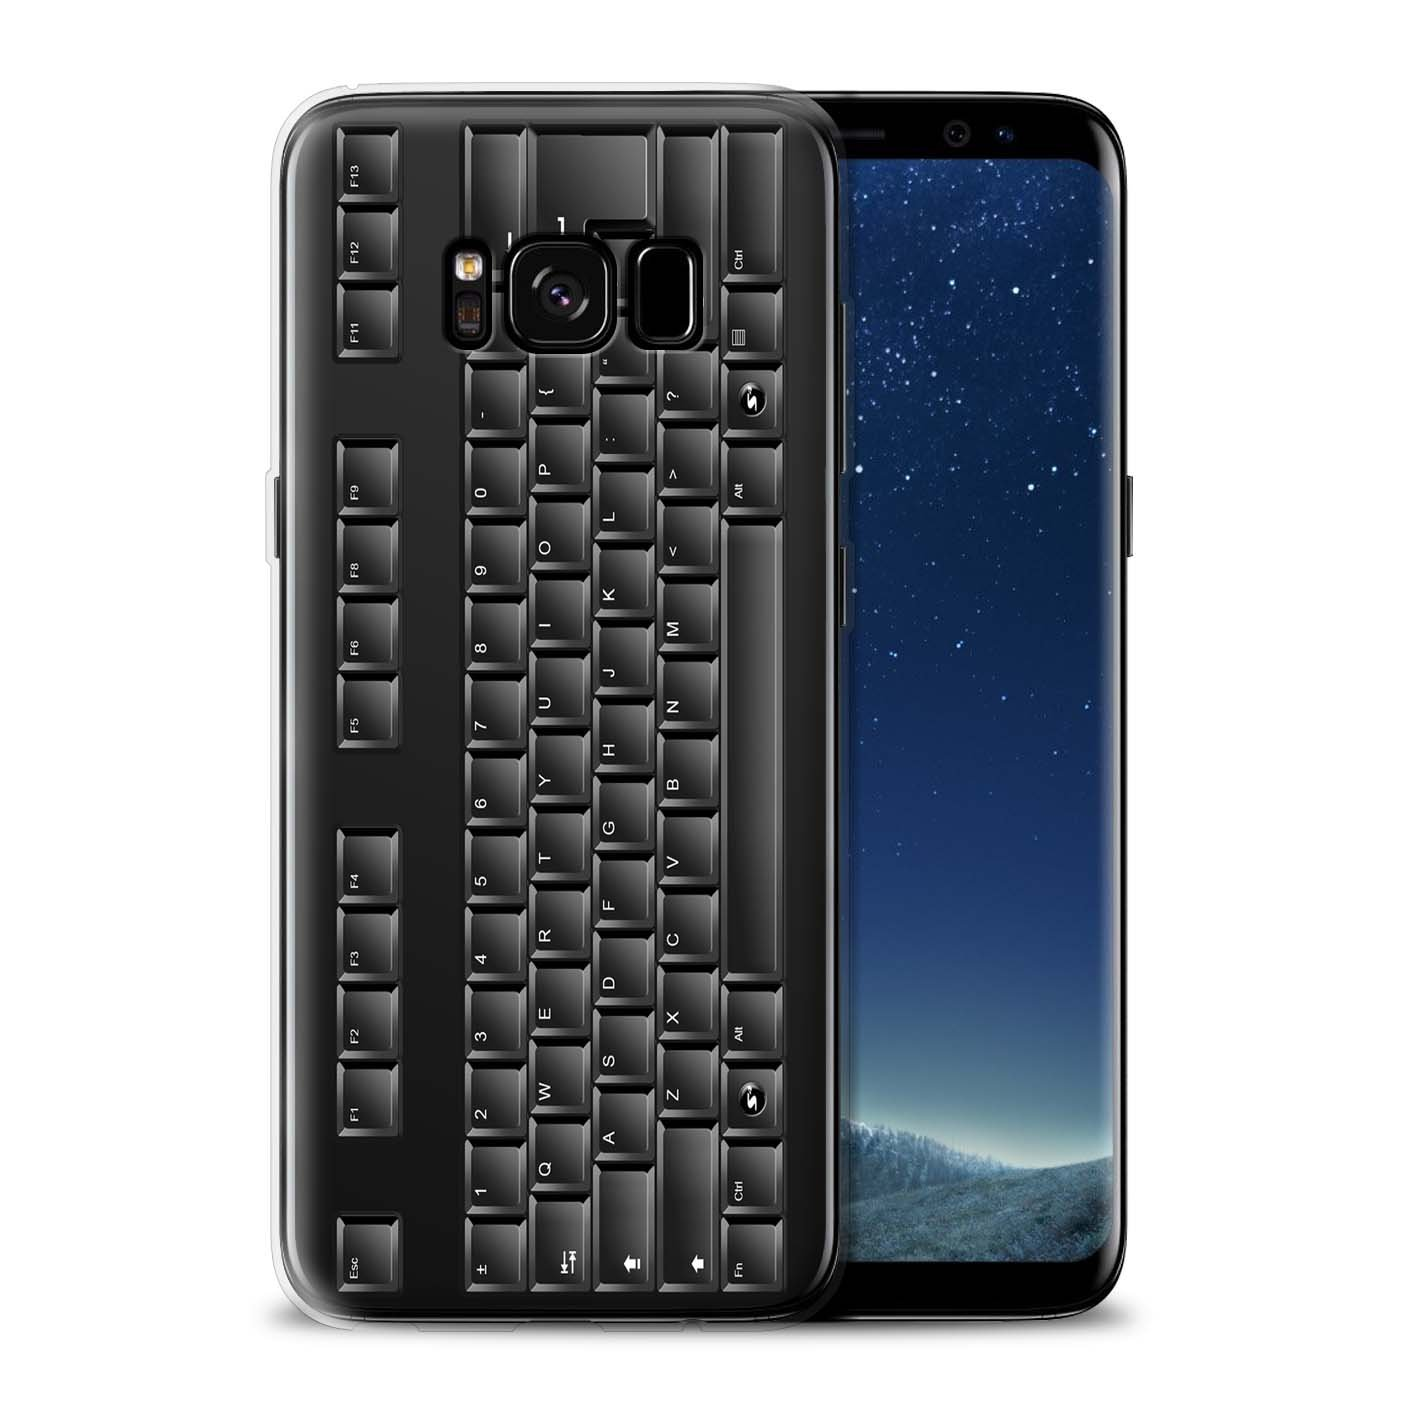 keyboard cover samsung s8 plus